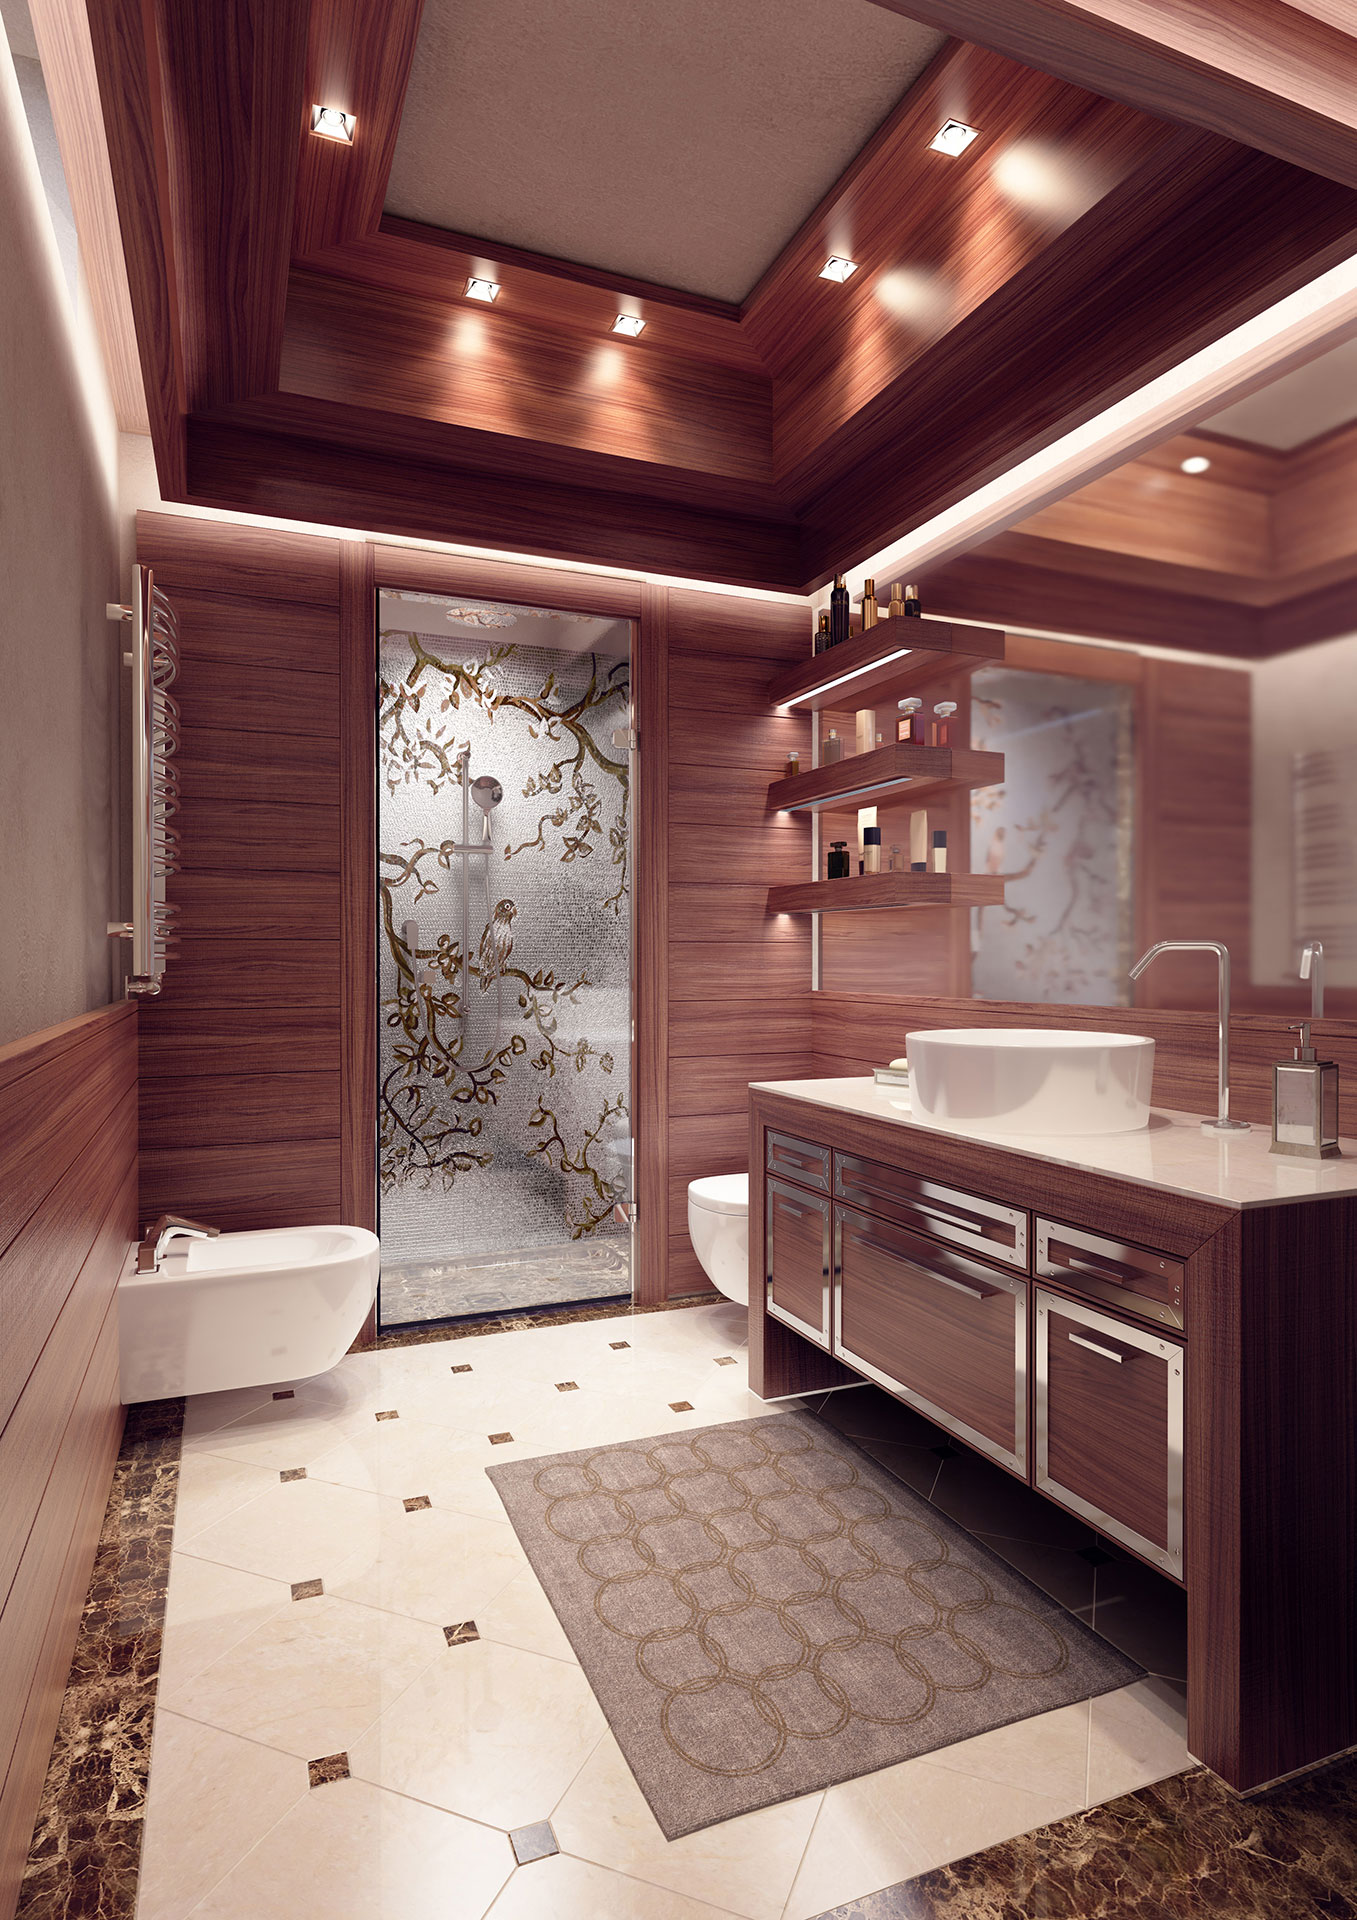 Faoma bespoke luxury bathrooms